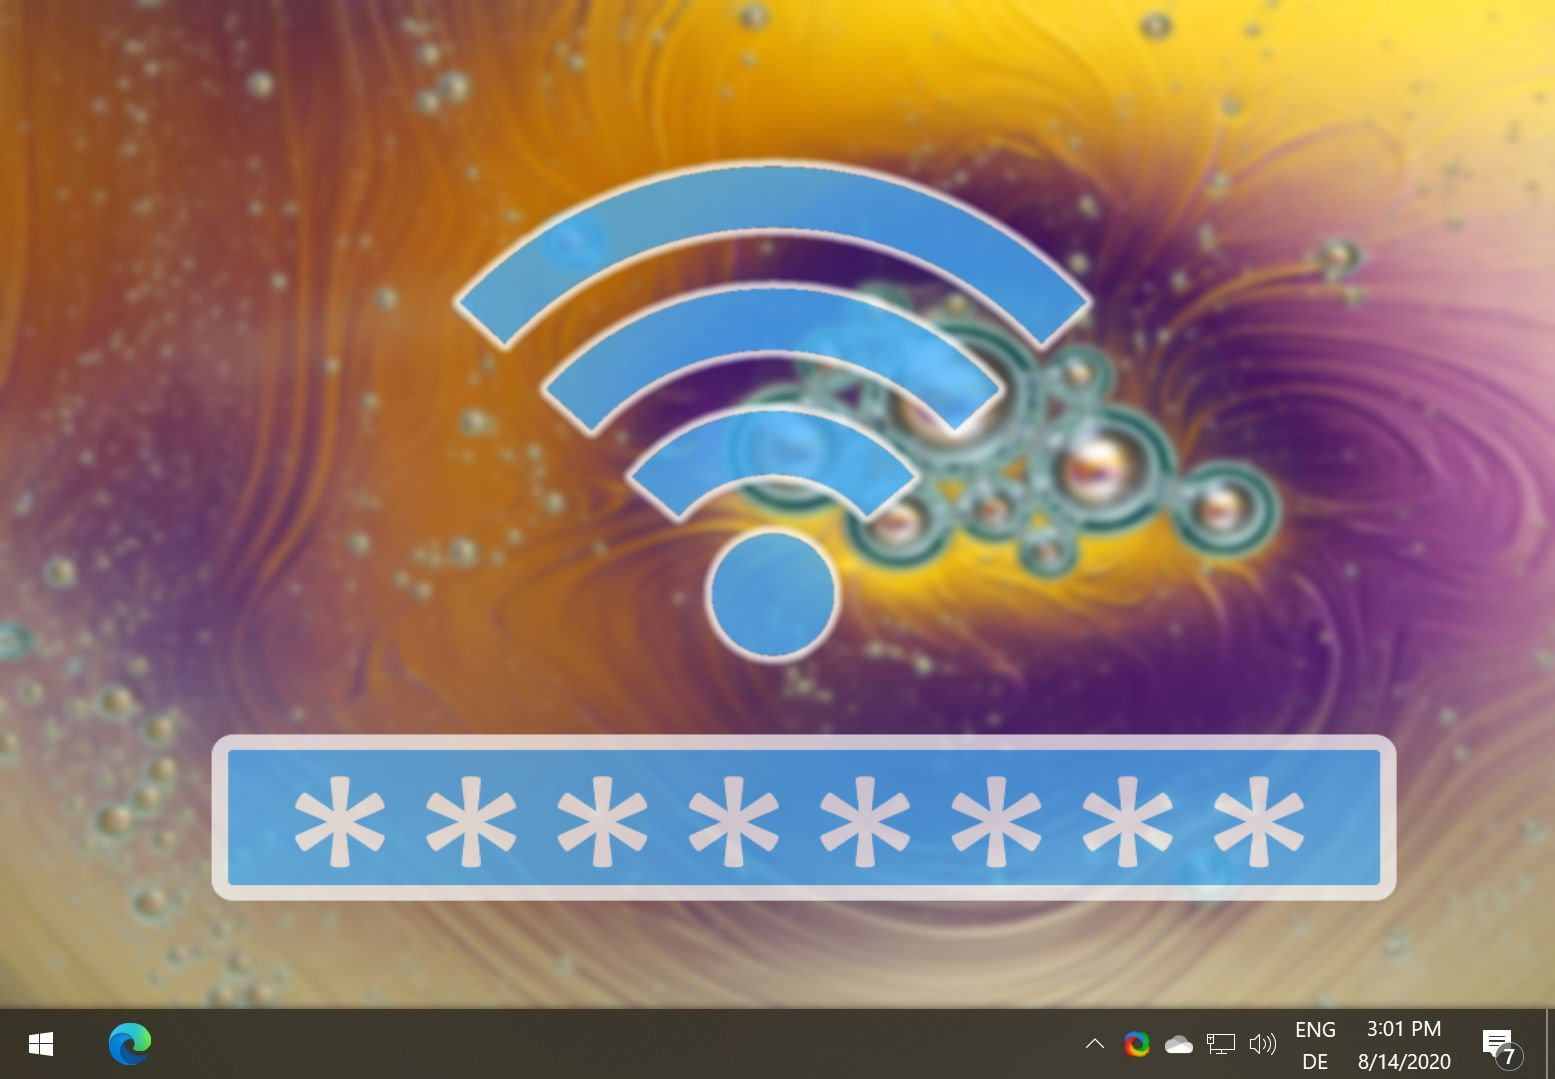 Windows 10 How To Find Your Wifi Password Network Security Key Wifi Password Network Security Wifi